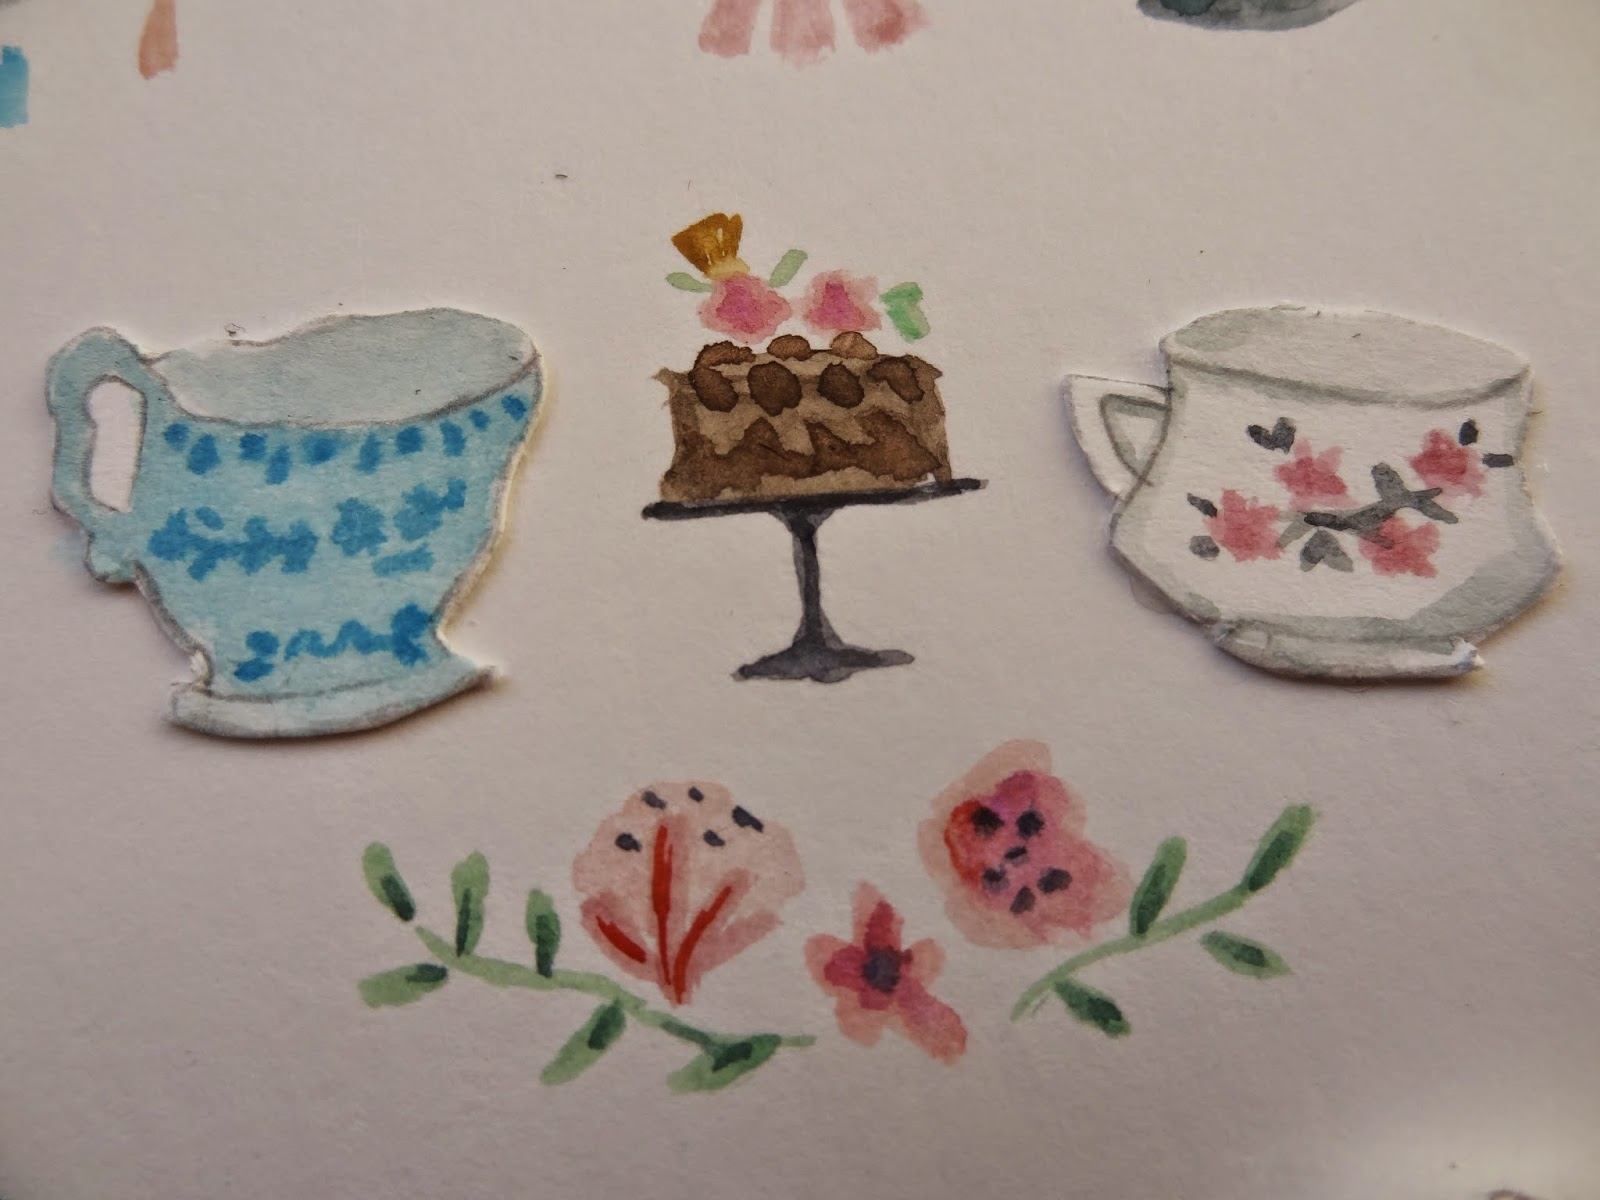 paint illustrator craft tea time cake sweet pastel flowers tacitas hora del té